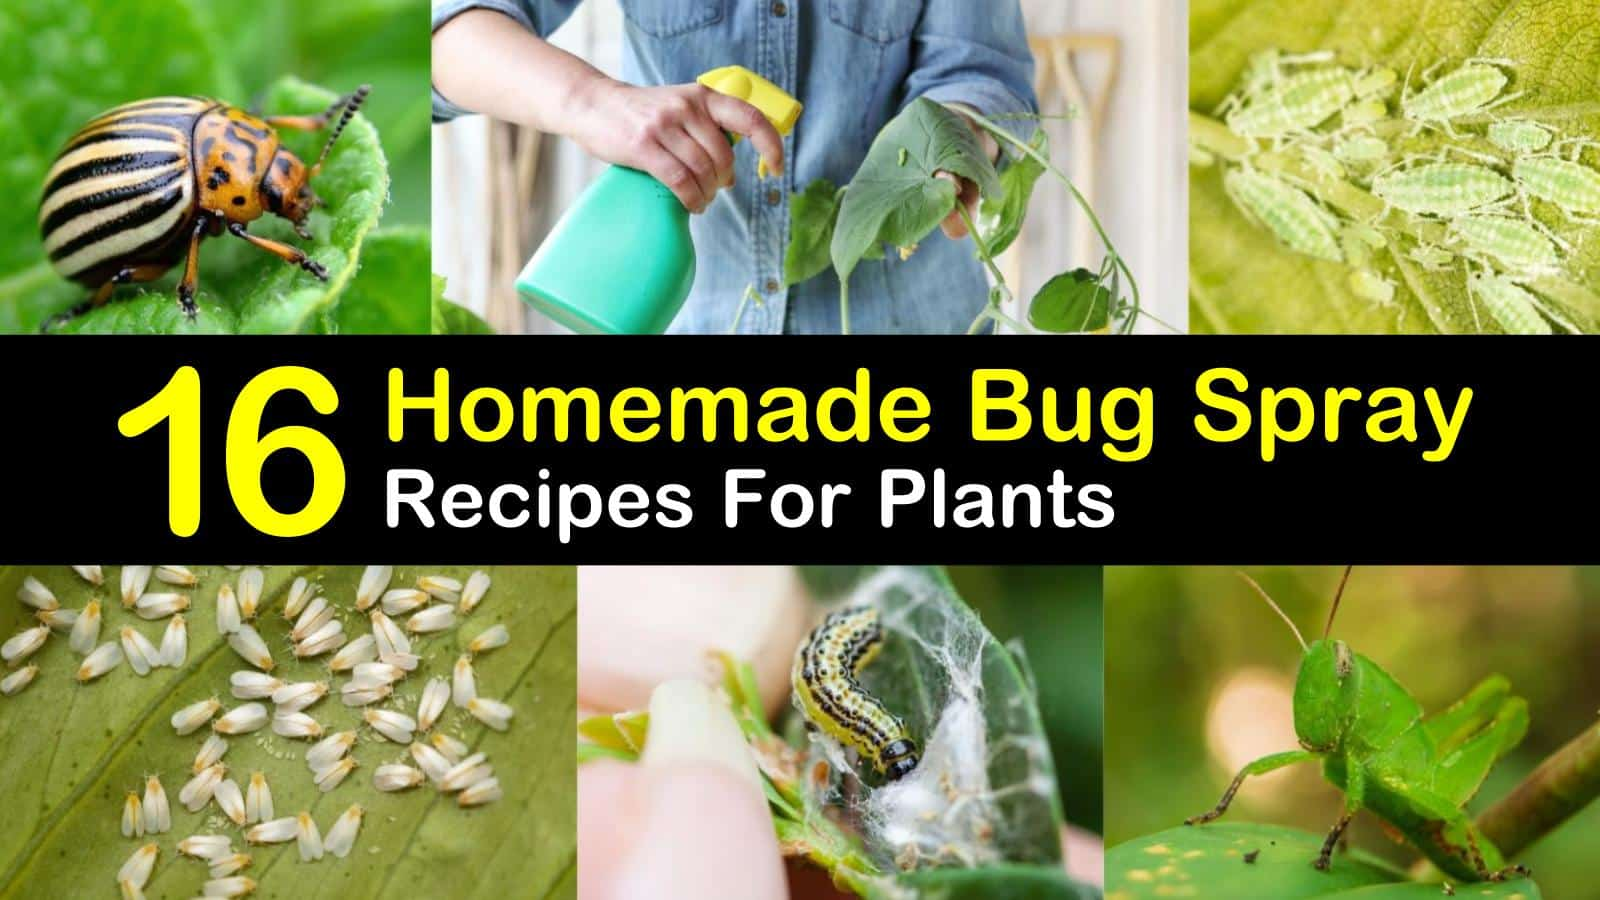 homemade bug spray for plants titleimg1